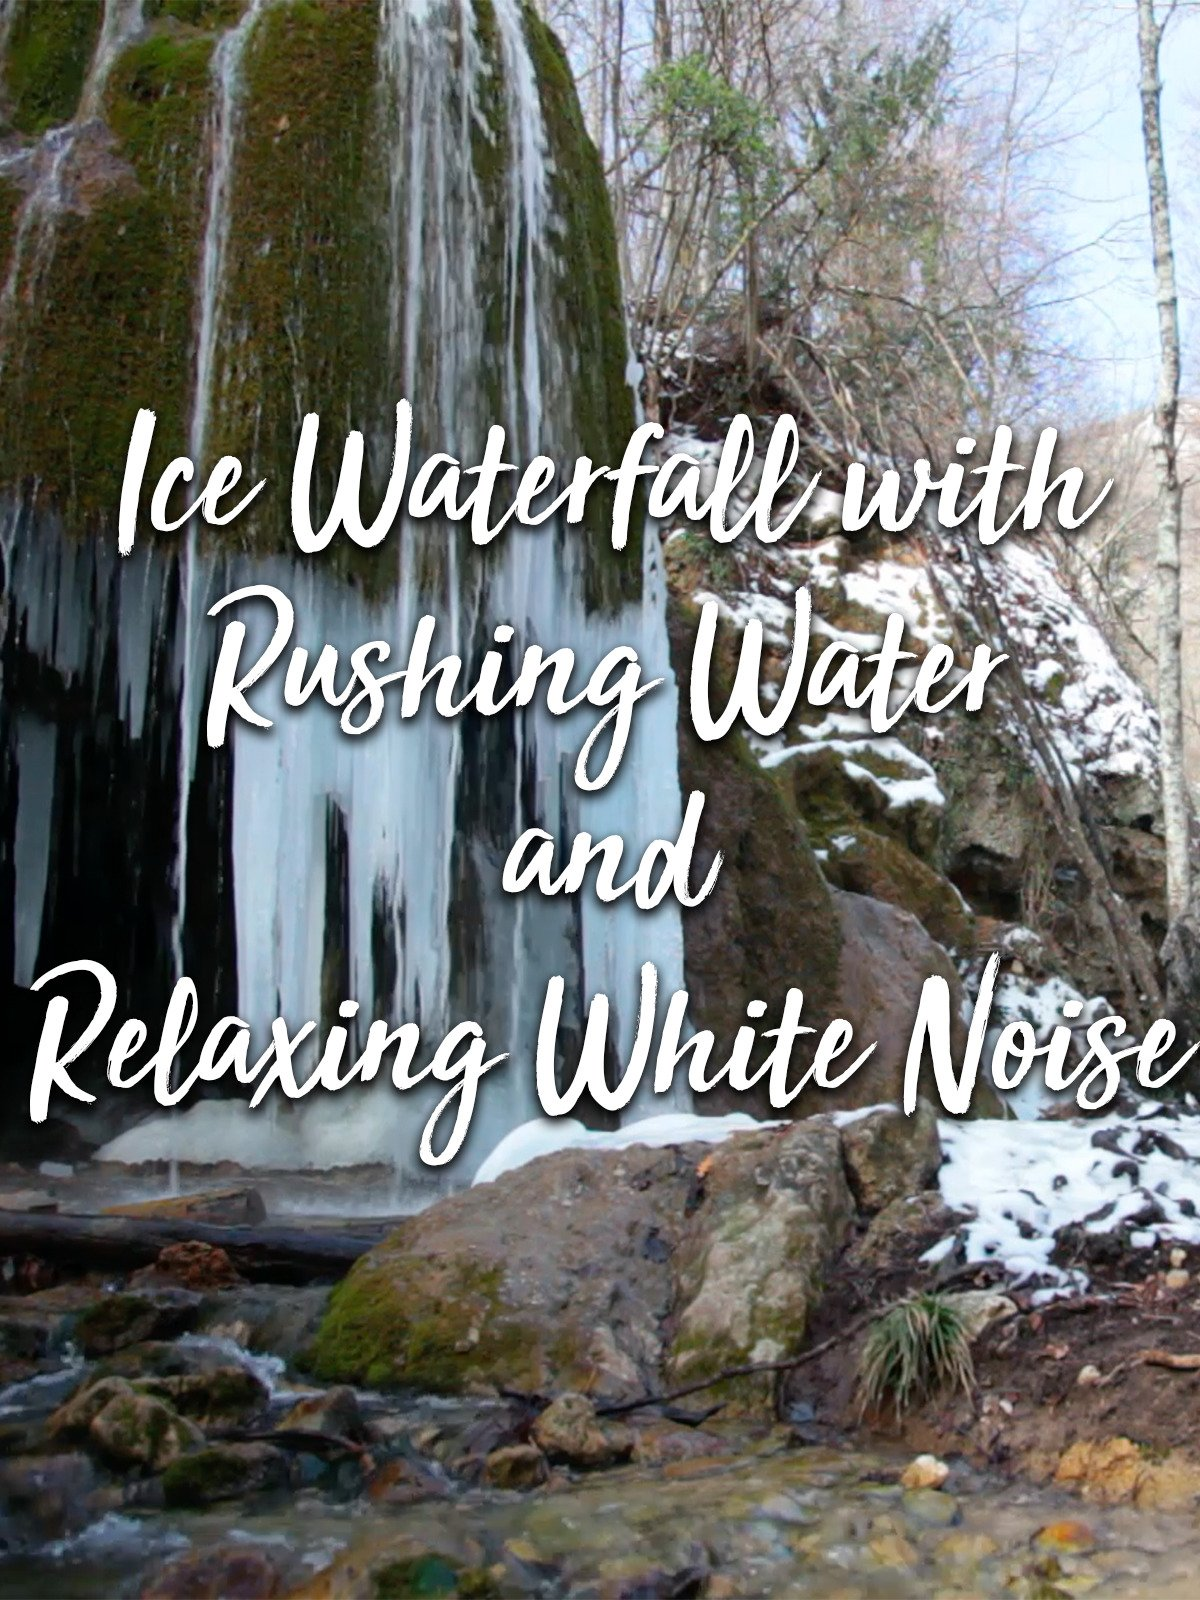 Ice Waterfall with Rushing Water and Relaxing White Noise